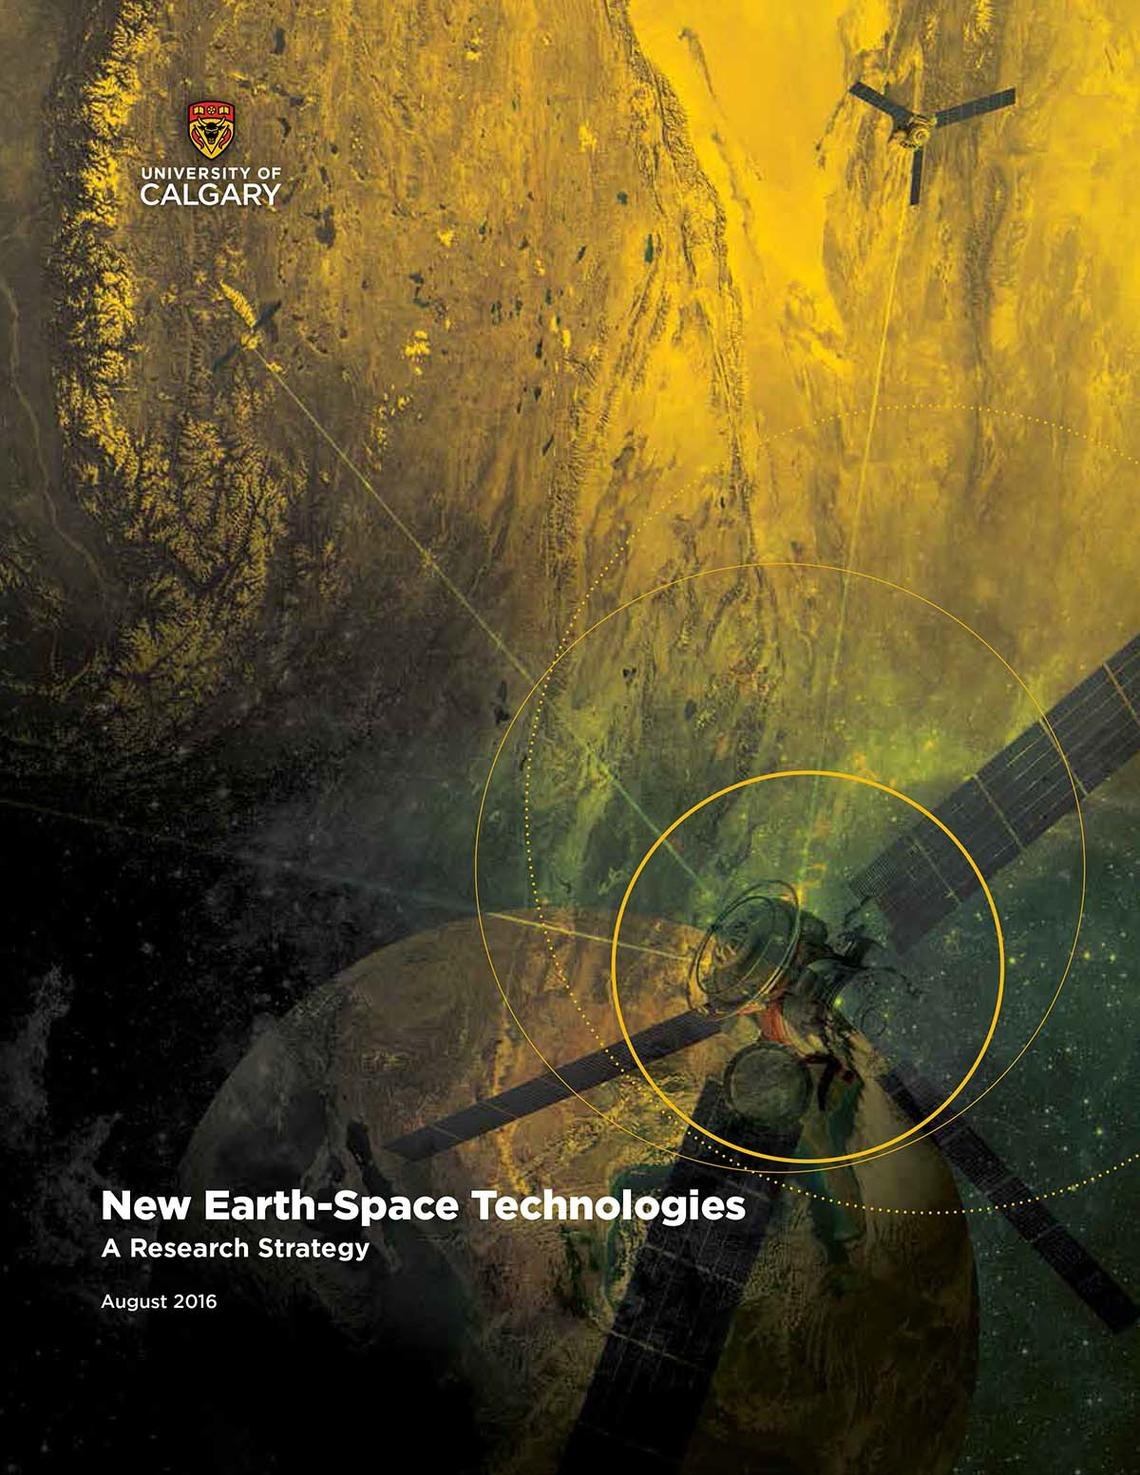 Download the New Earth-Space Technologies Research Strategy.